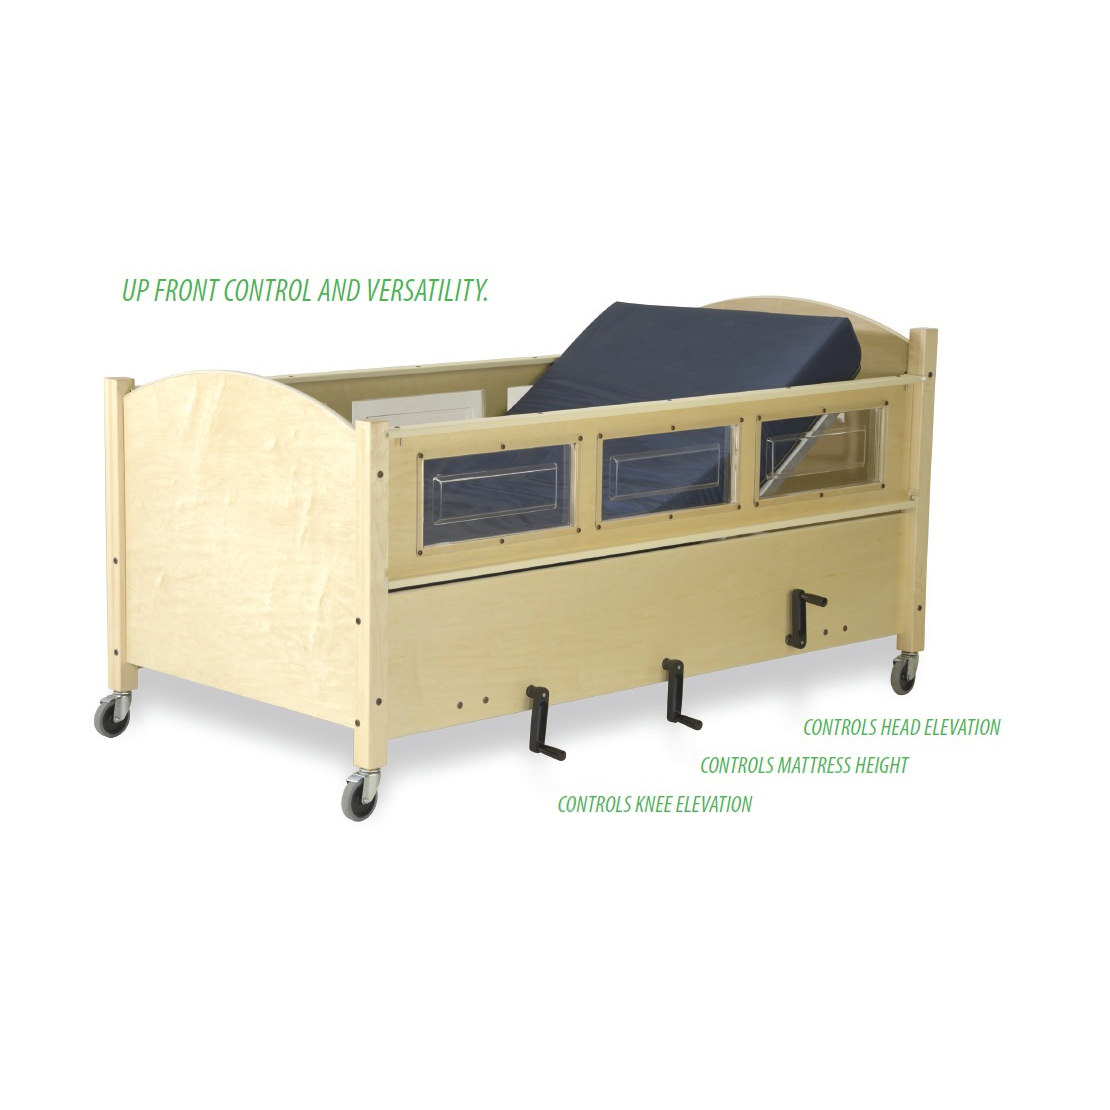 SleepSafer semi-electric bed with dual view